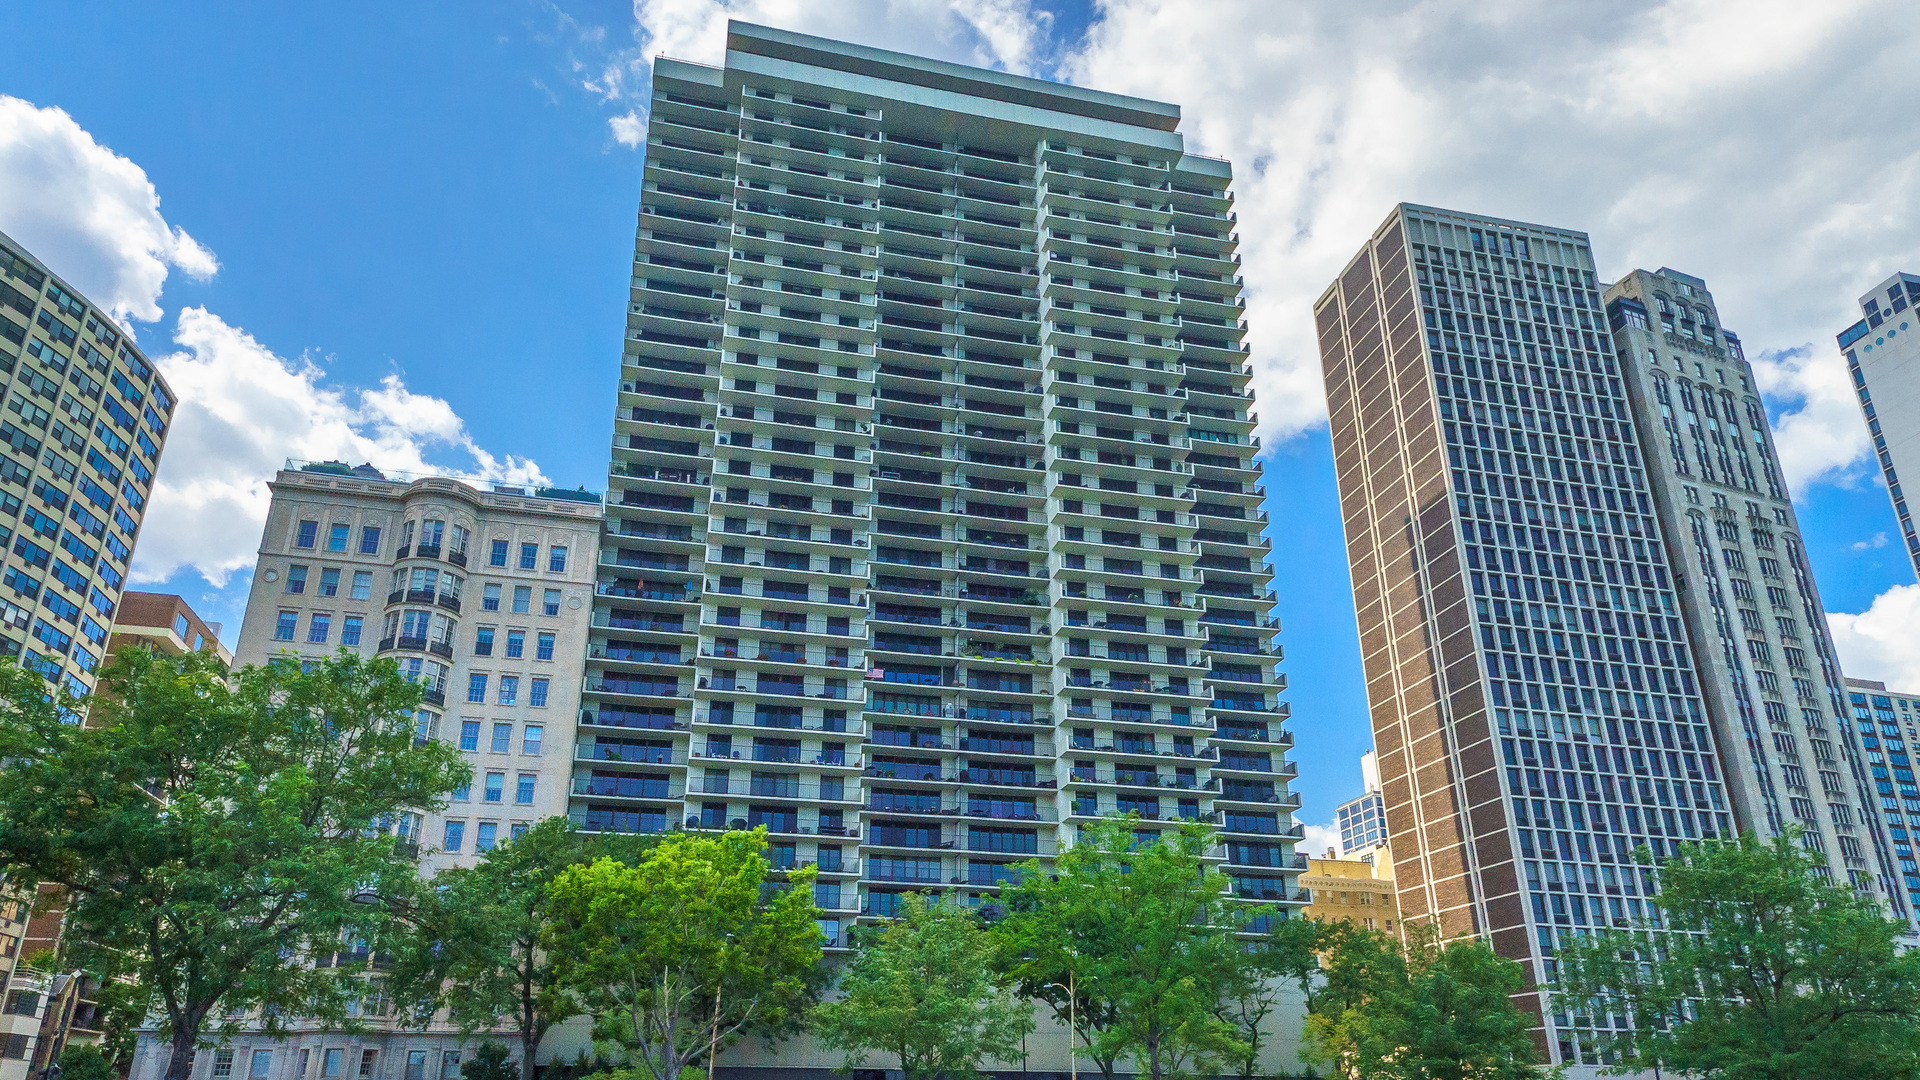 1212 North Lake Shore Drive Chicago, IL 60610